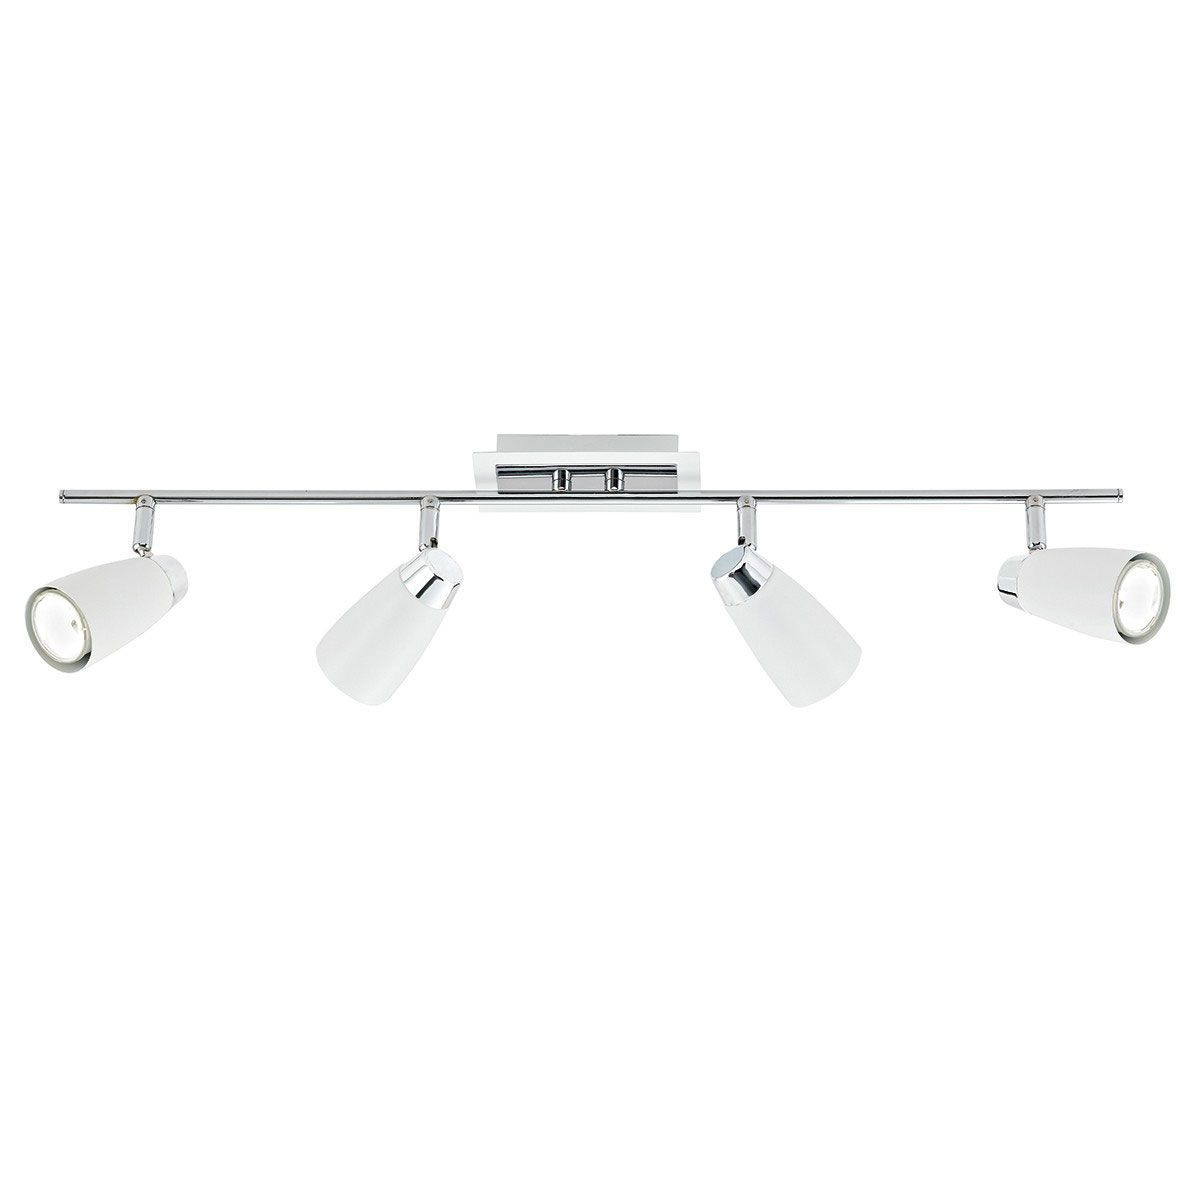 The Loft from Dar is a four light bar spotlight. Finished in matt ...